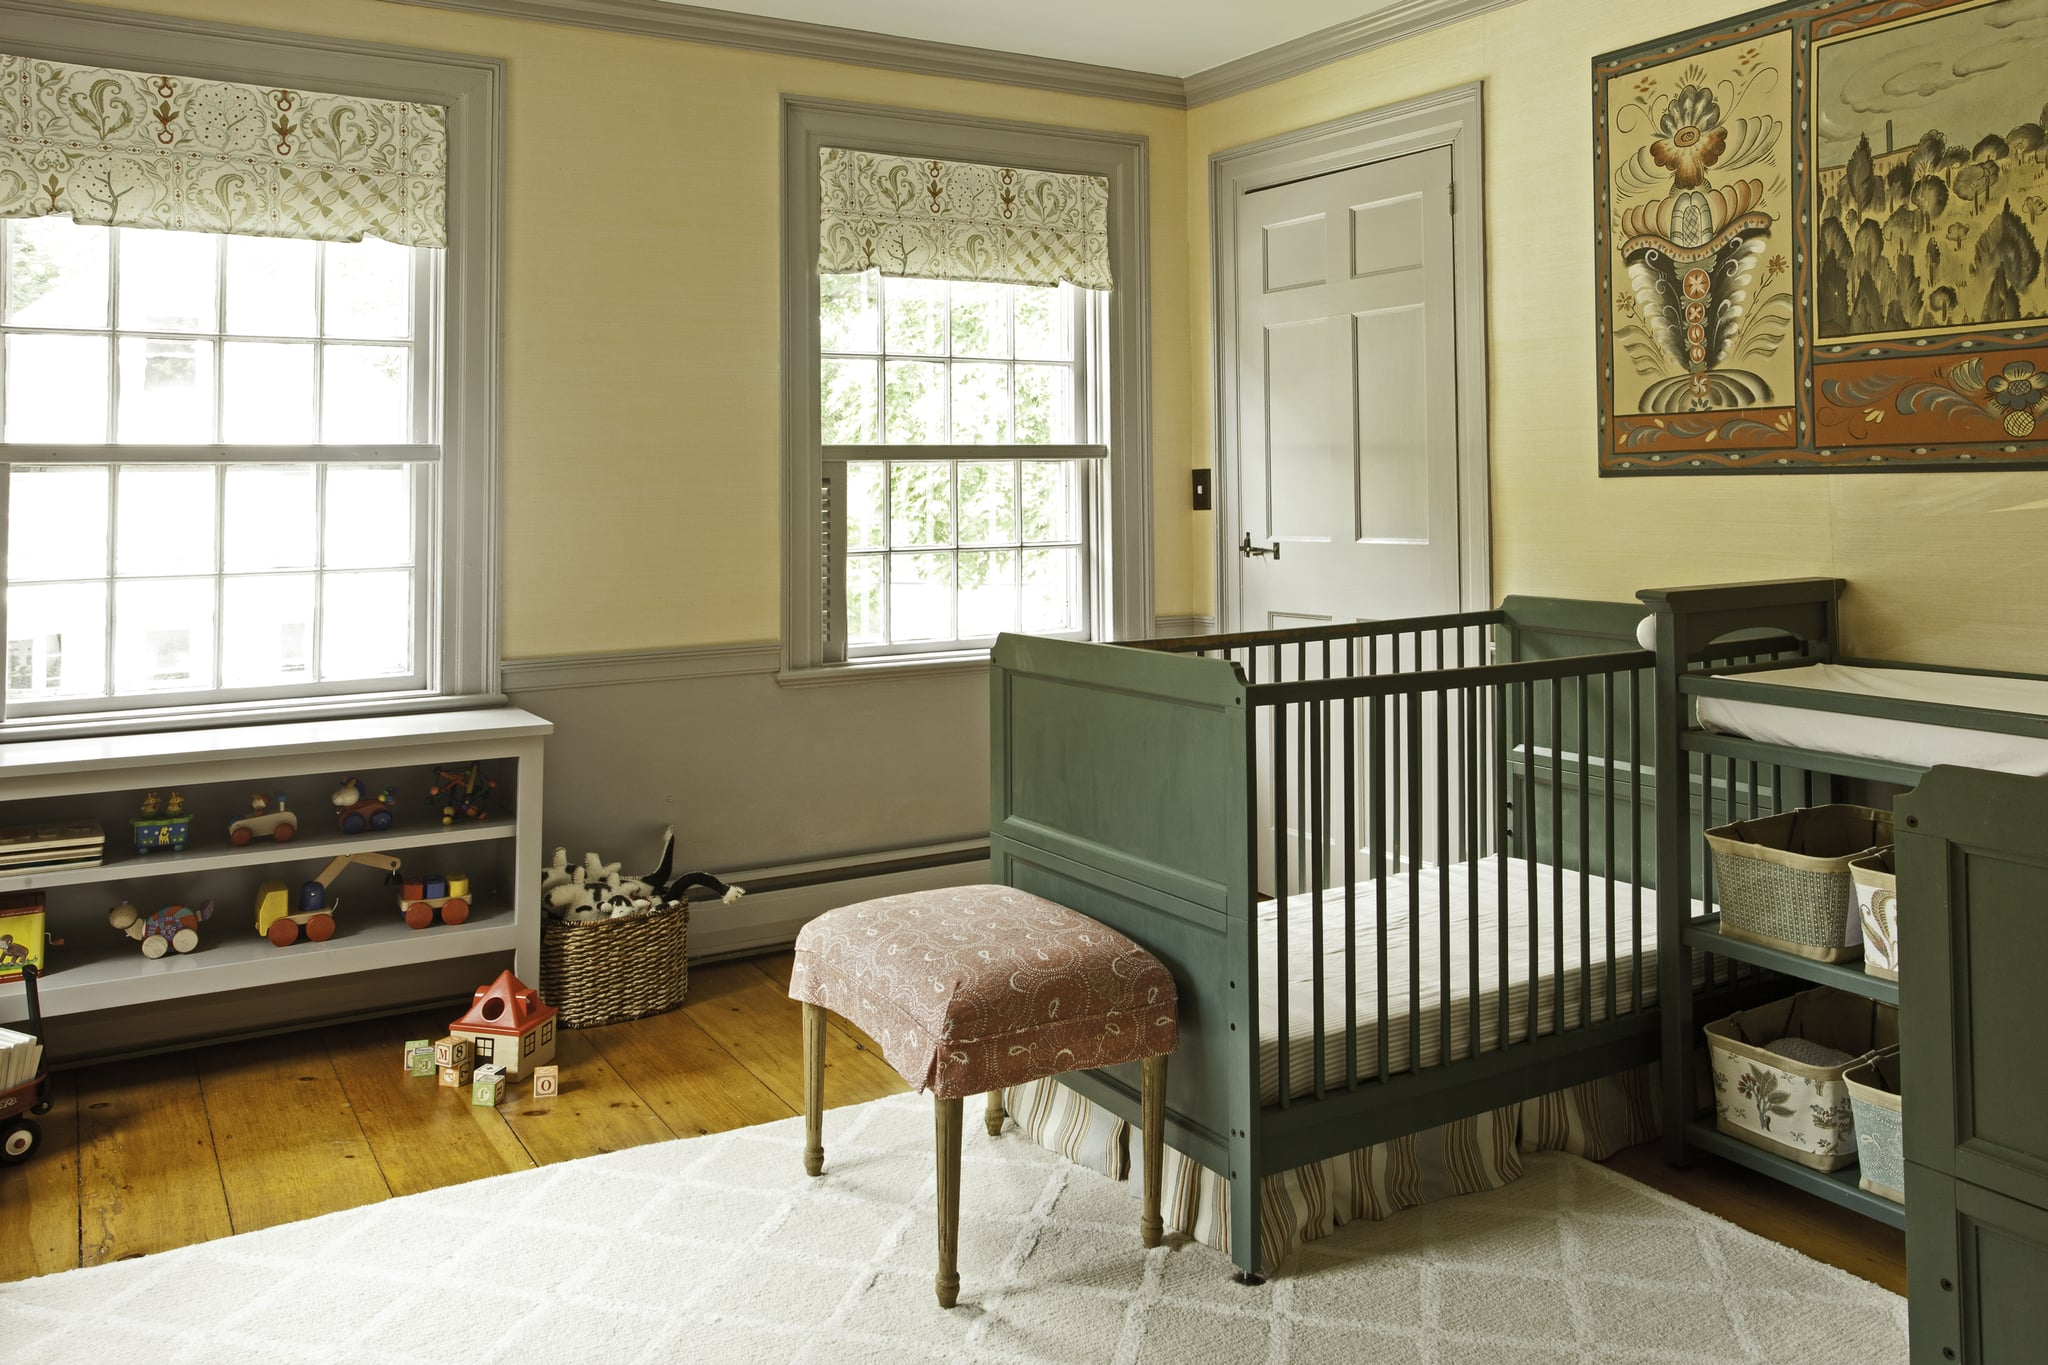 An Antique-y Nursery For Two